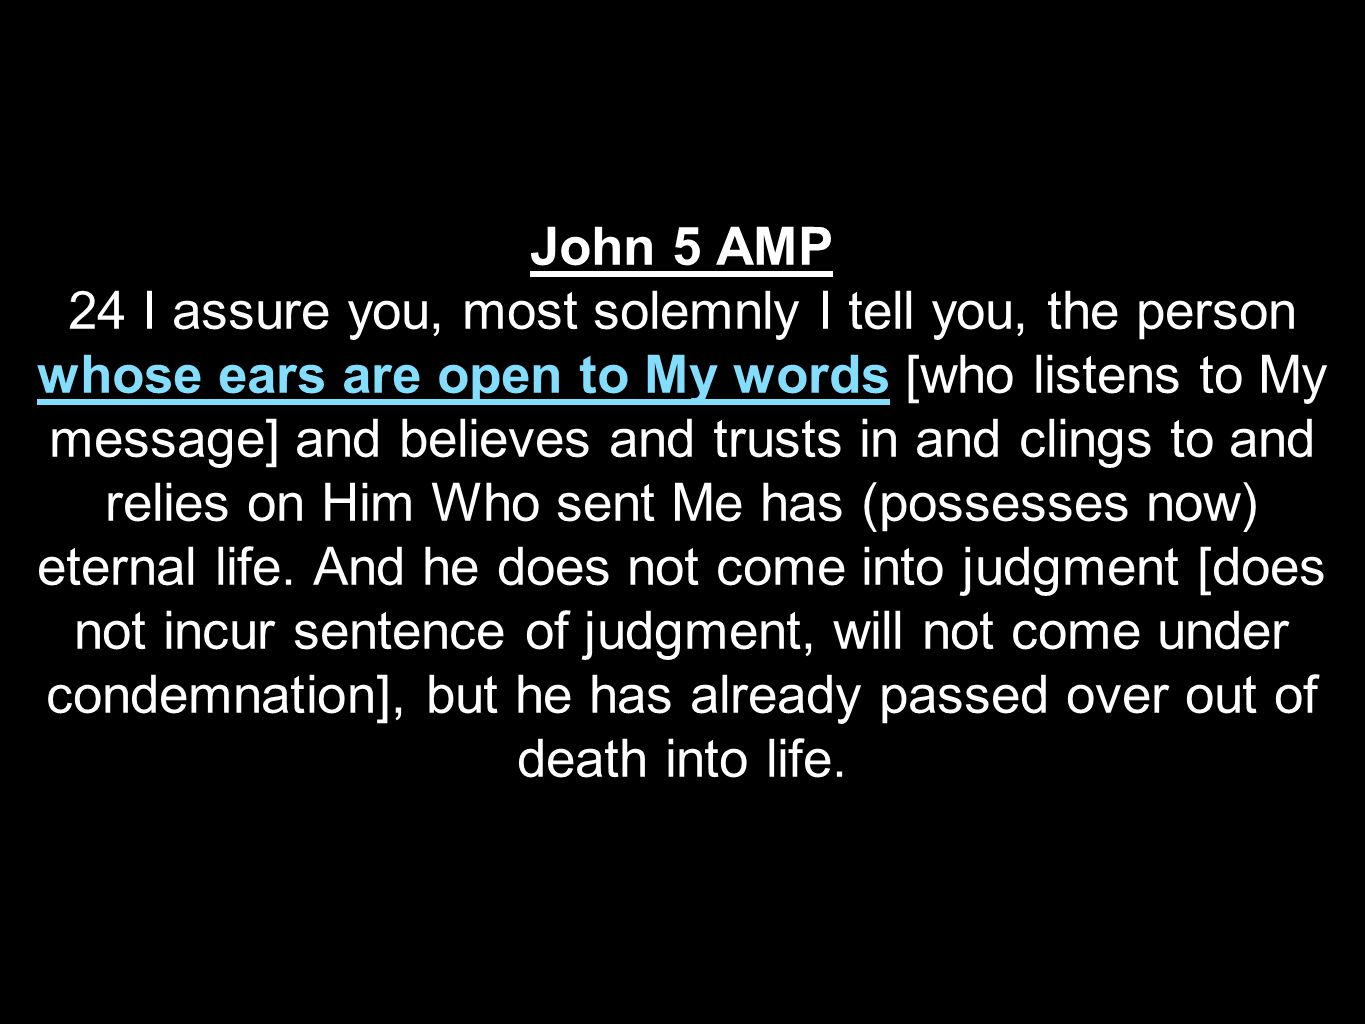 John 5 AMP 24 I assure you, most solemnly I tell you, the person whose ears are open to My words [who listens to My message] and believes and trusts in and clings to and relies on Him Who sent Me has (possesses now) eternal life.